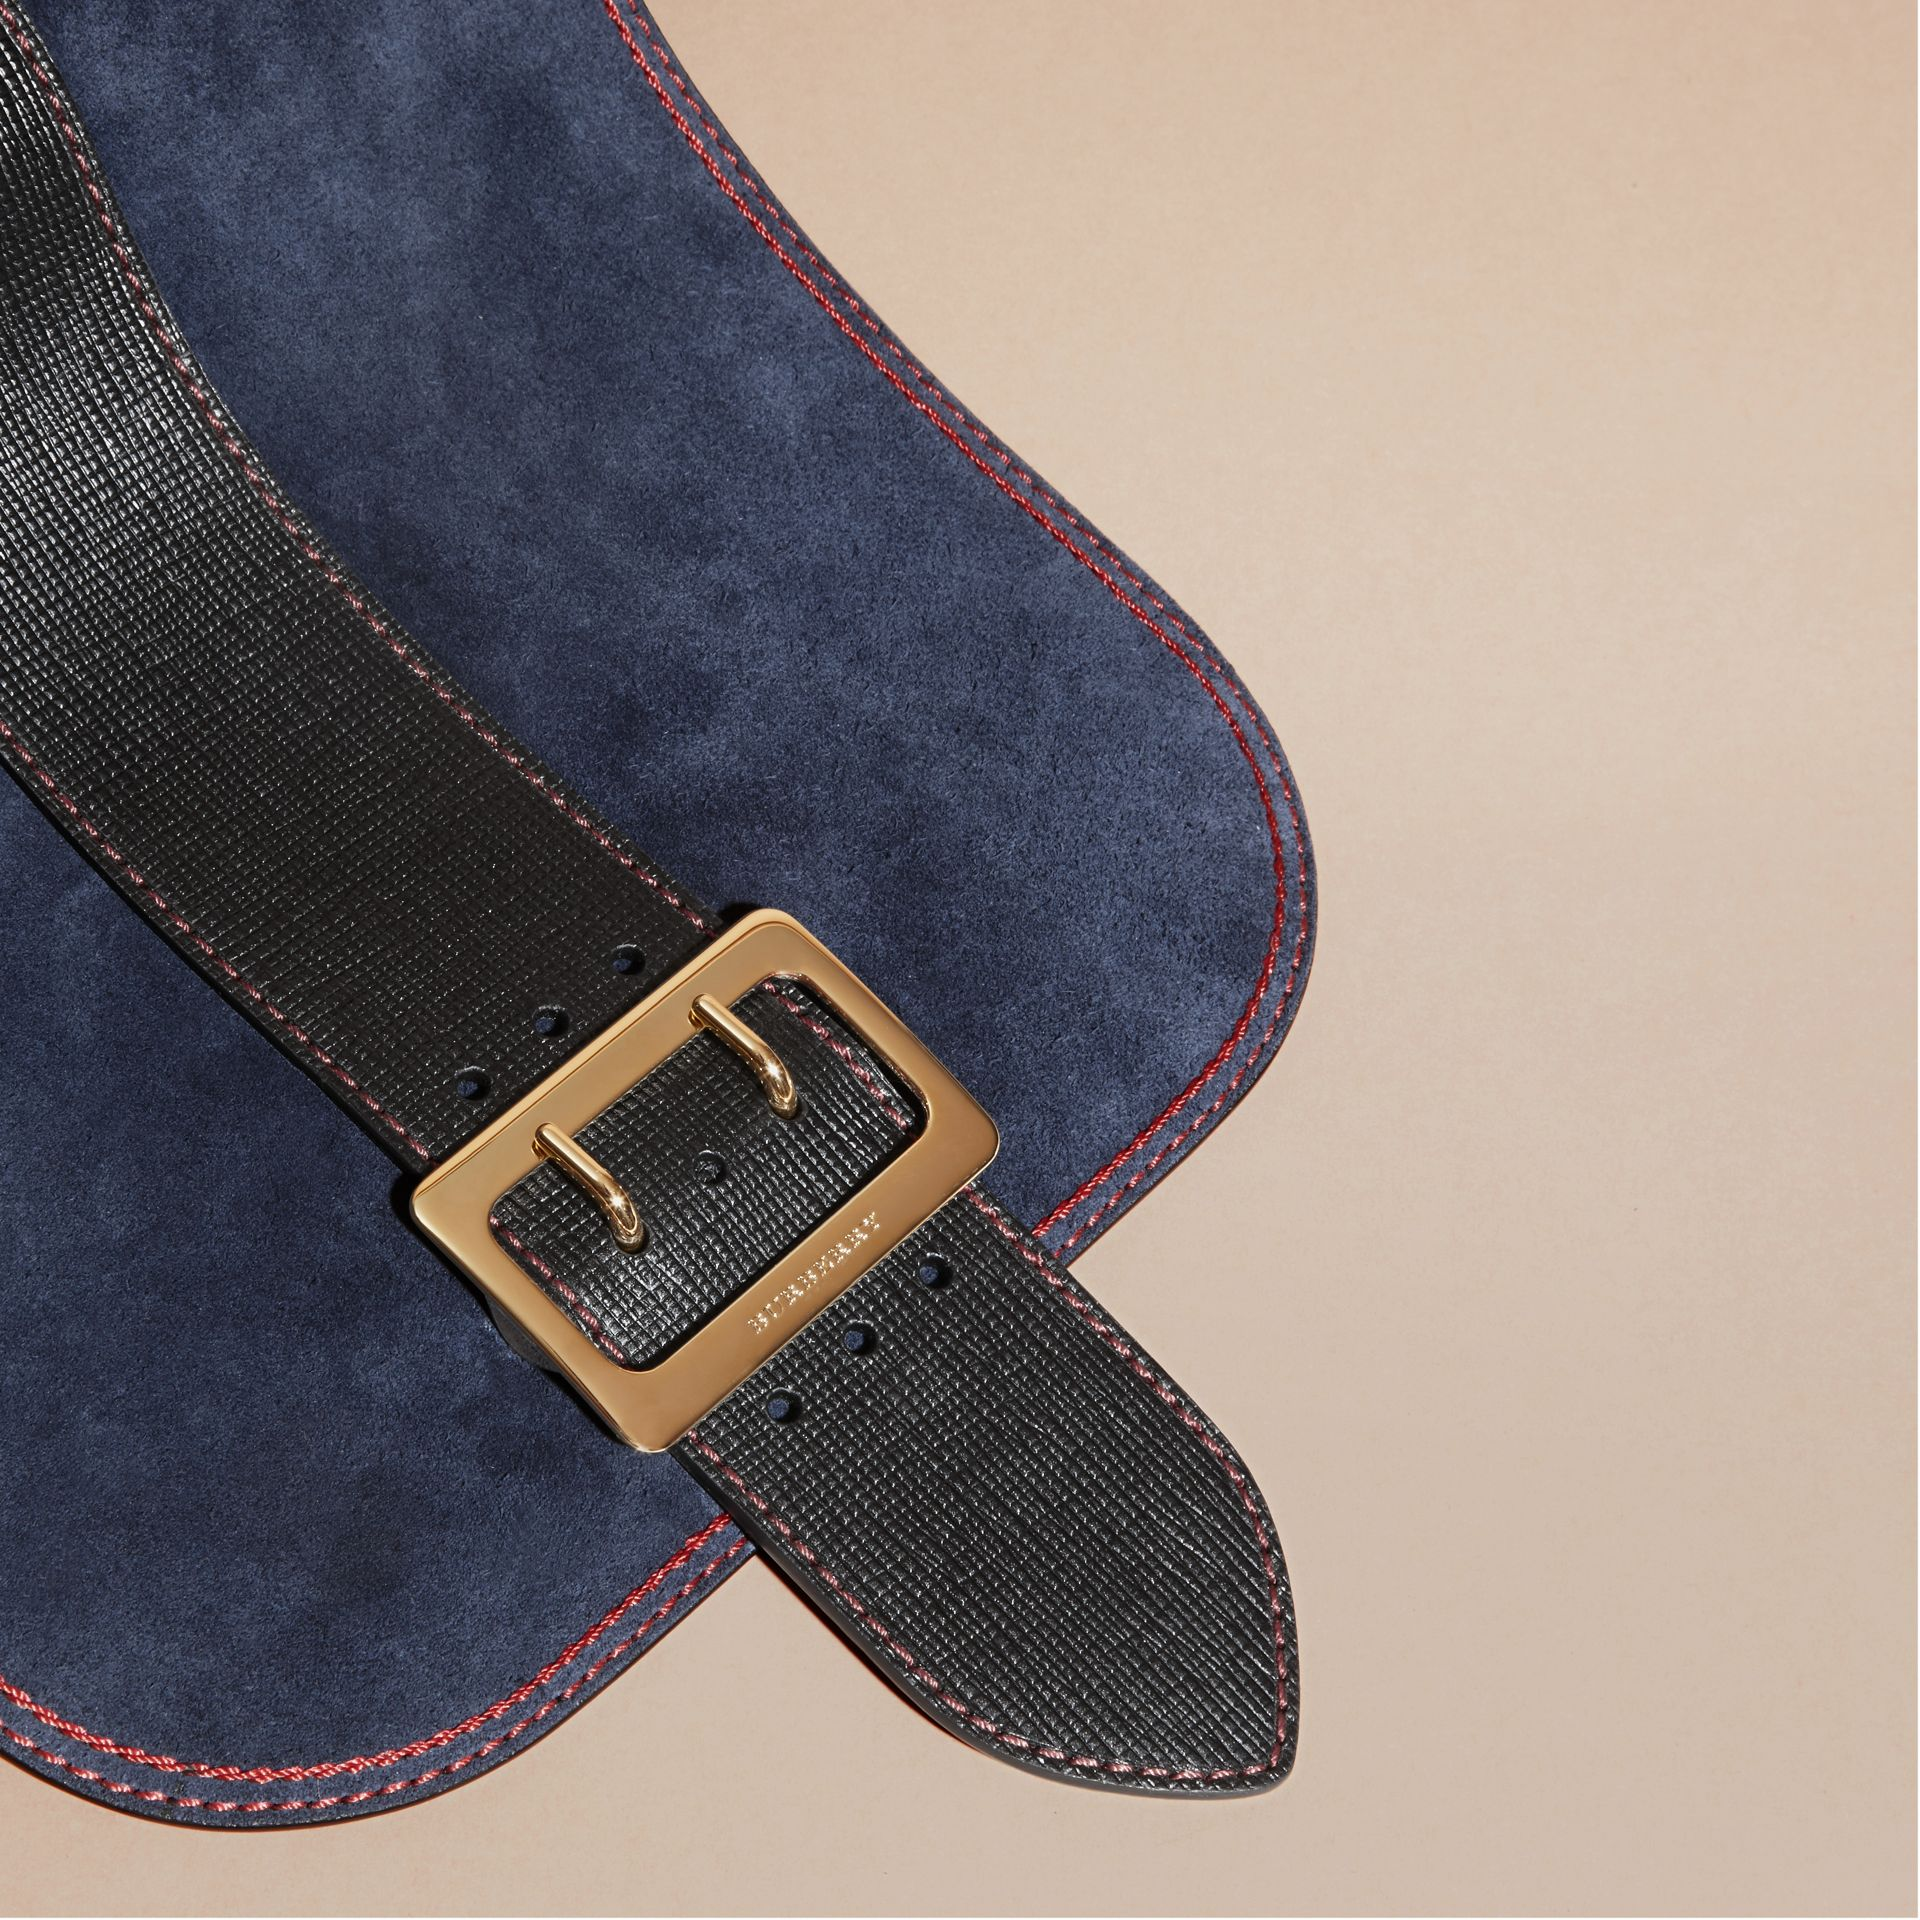 Navy The Buckle Satchel in Suede with Topstitching Navy - gallery image 2